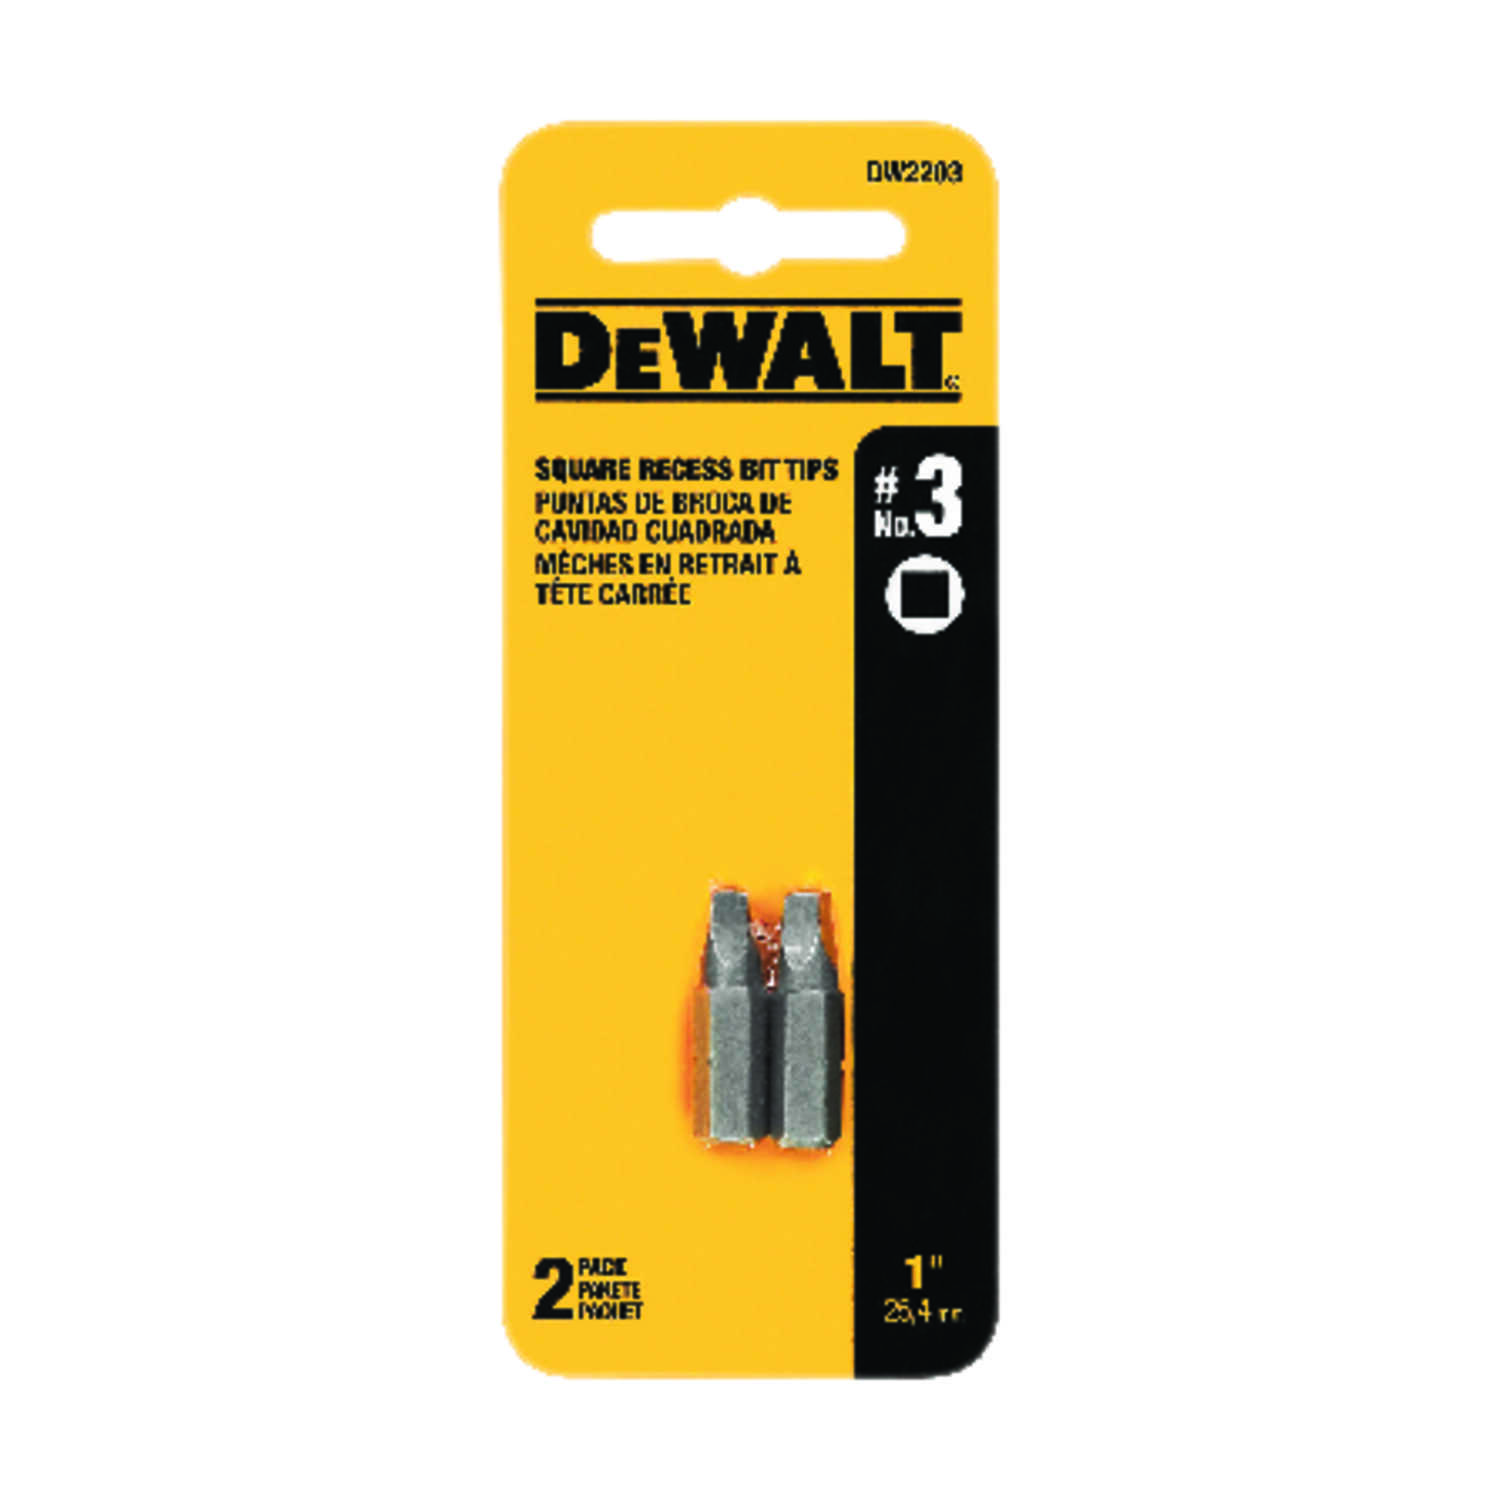 DeWalt  #3 in.  x 1 in. L Screwdriver Bit  1/4 in. Square Recess  2 pc. Heat-Treated Steel